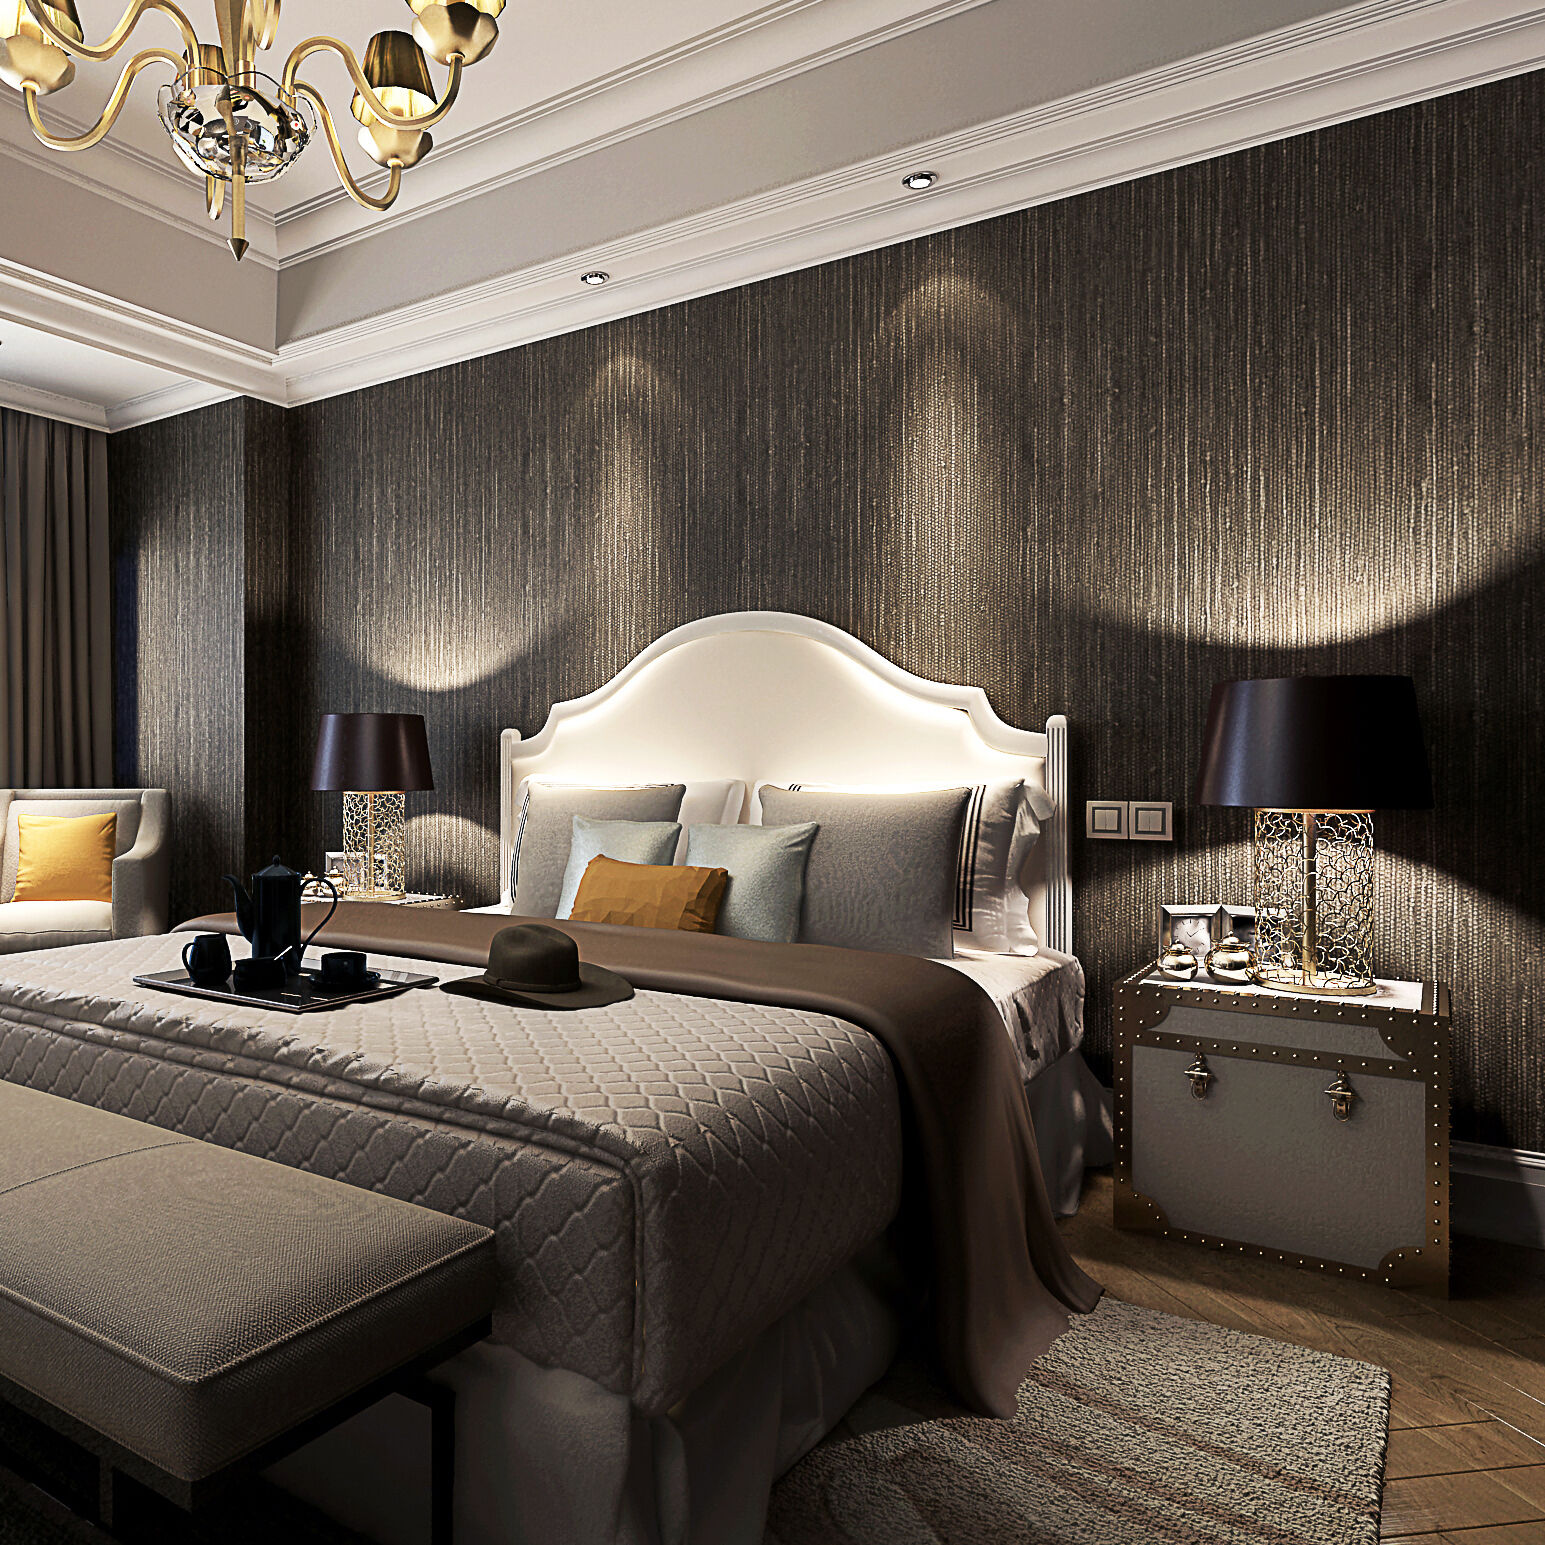 Rooms With Grasscloth Wallpaper: Metallic Faux Grasscloth Wallpaper Dark Brown Vinyl